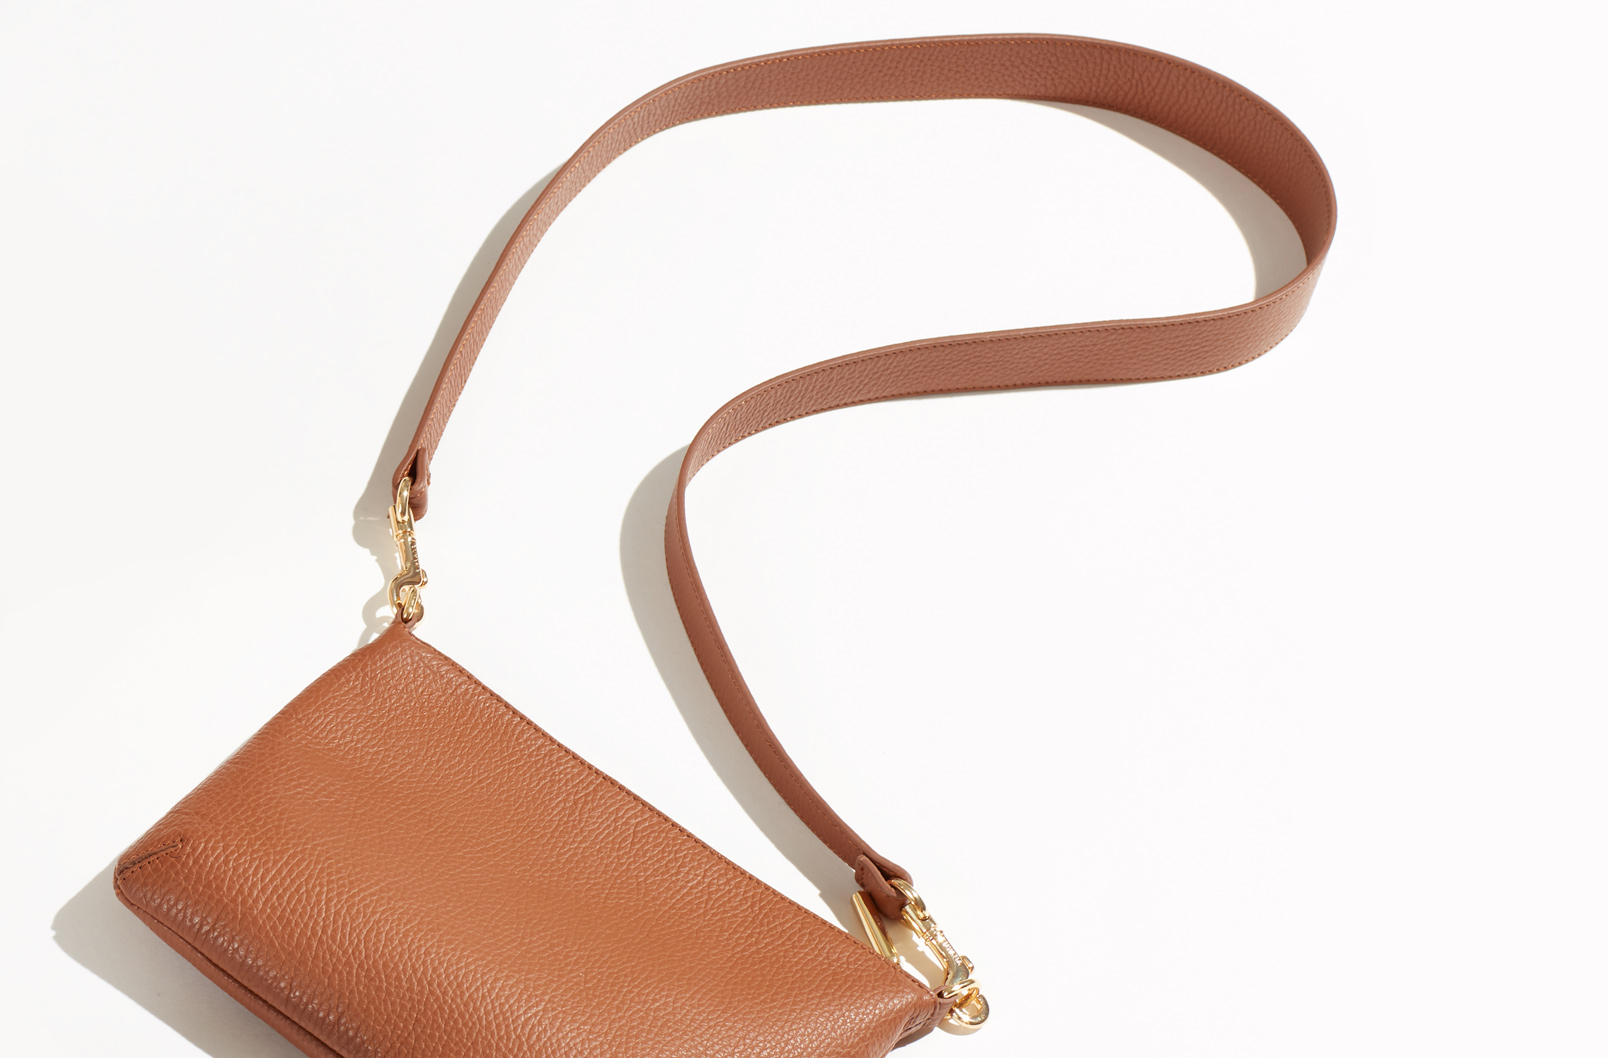 Image showing Curved Crossbody laying flag with strap